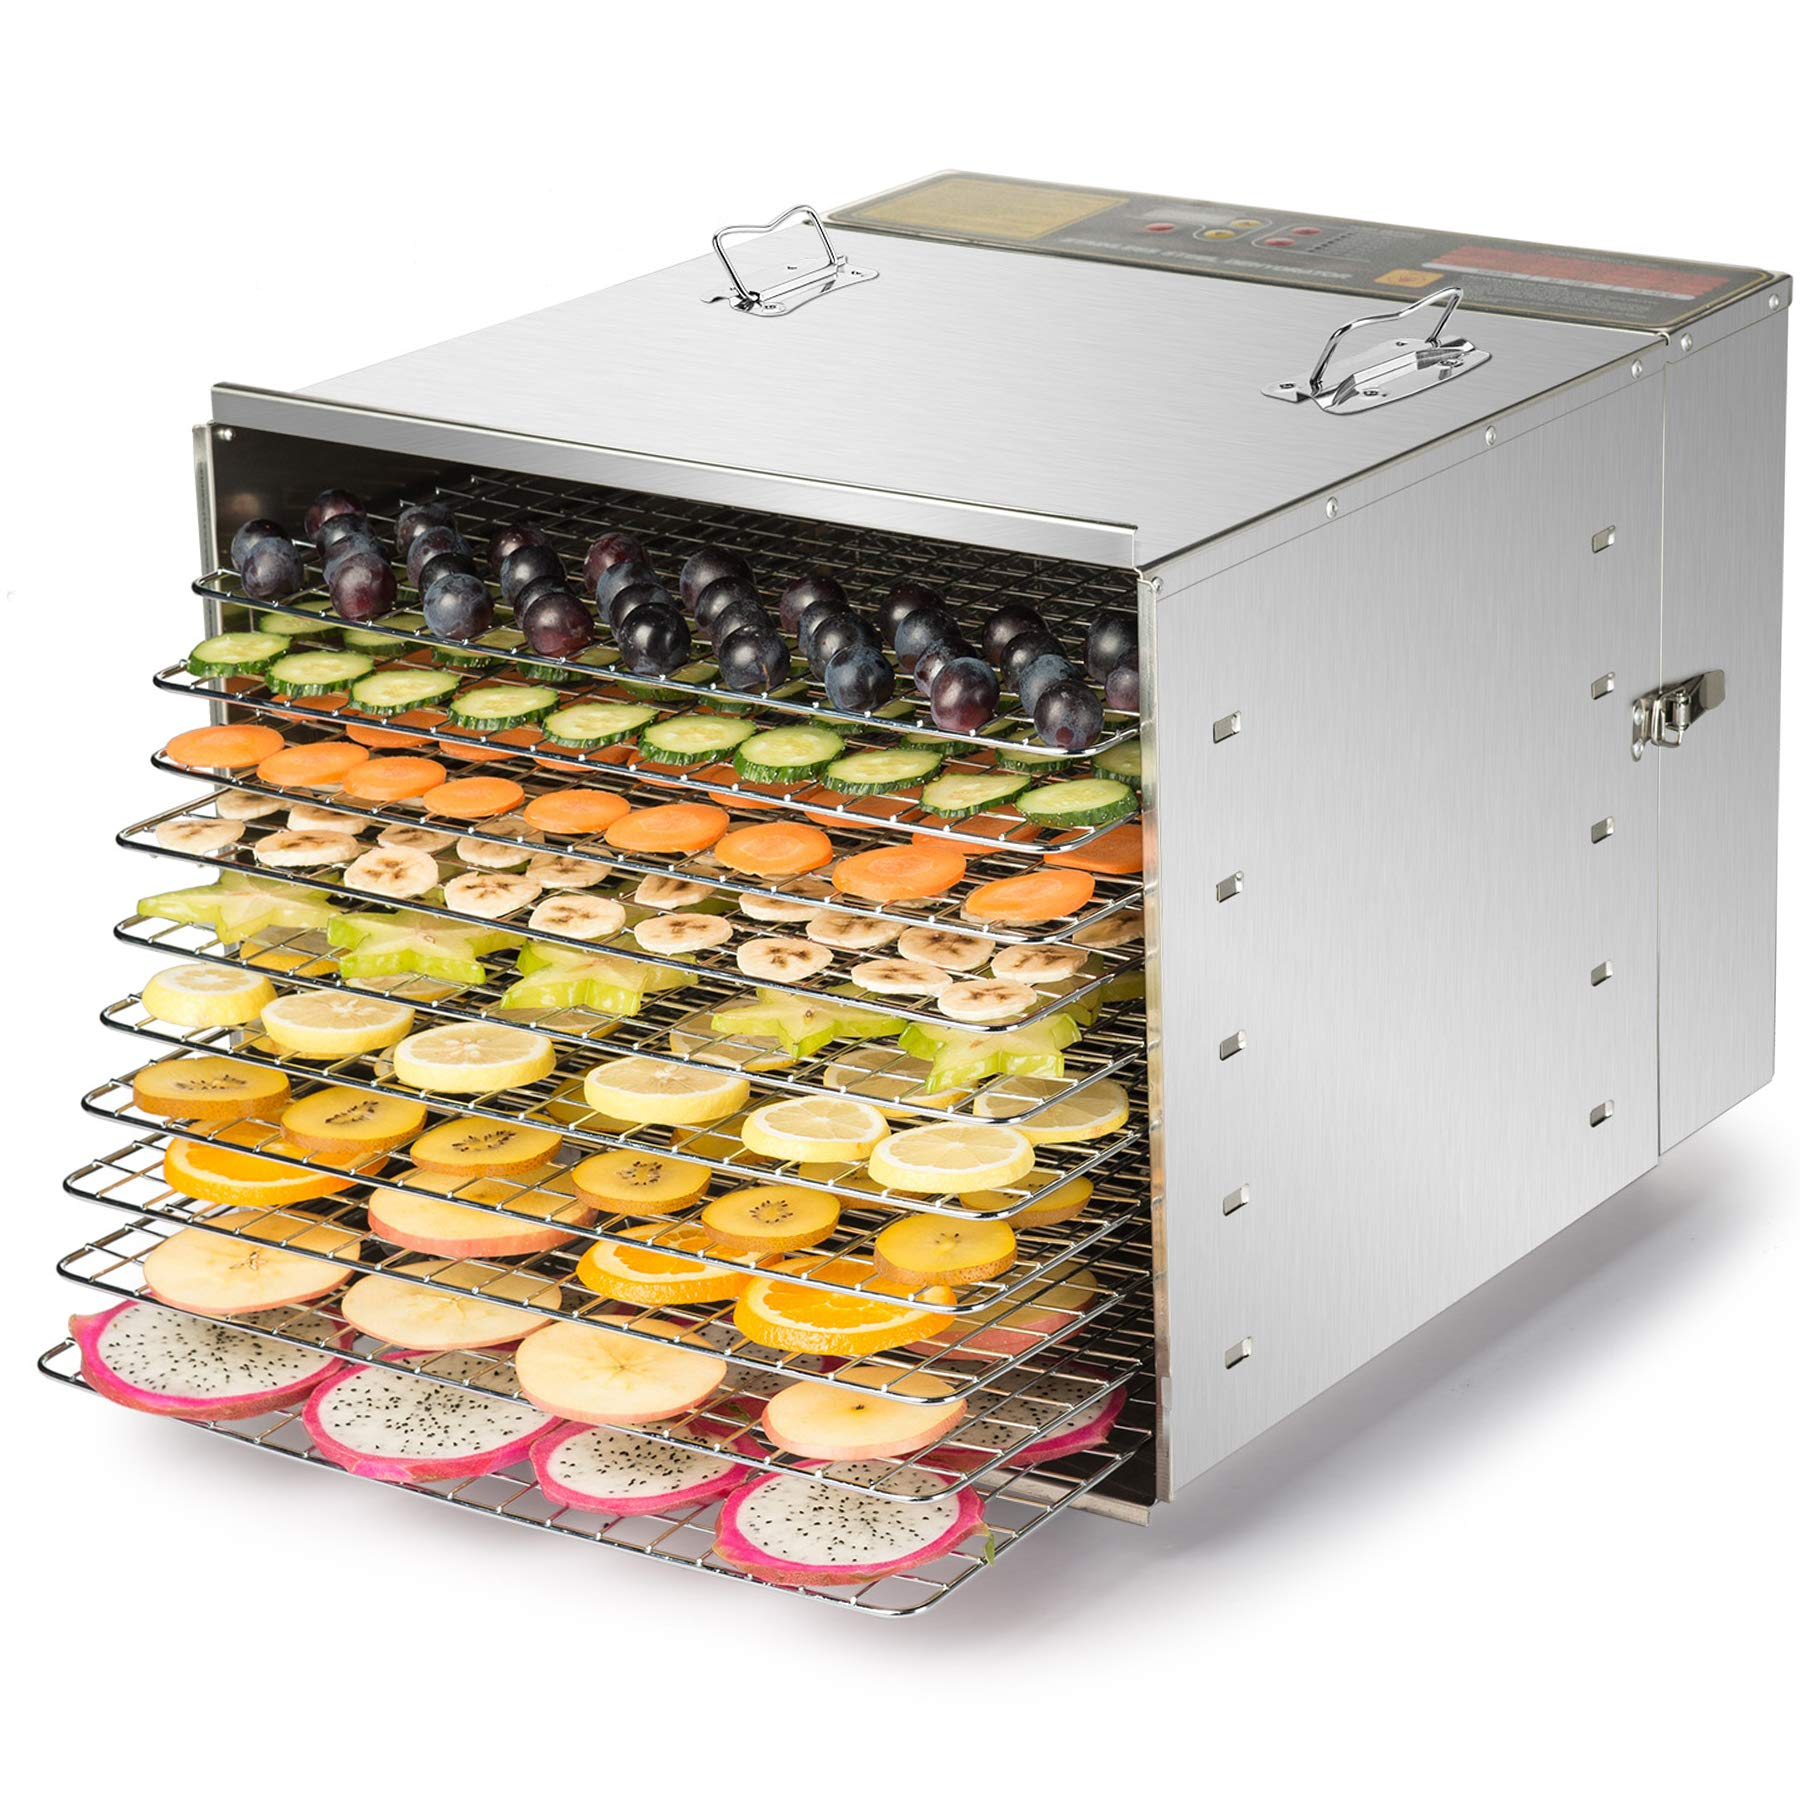 CO-Z Commercial Grade Stainless Steel Electric Food Dehydrator Machine, Meat or Beef Jerky Maker, Fruit Dryer with 10 Trays, 155 Degree Fahrenheit, Jerky Safe with 15 Hour Timer, 1000W by CO-Z